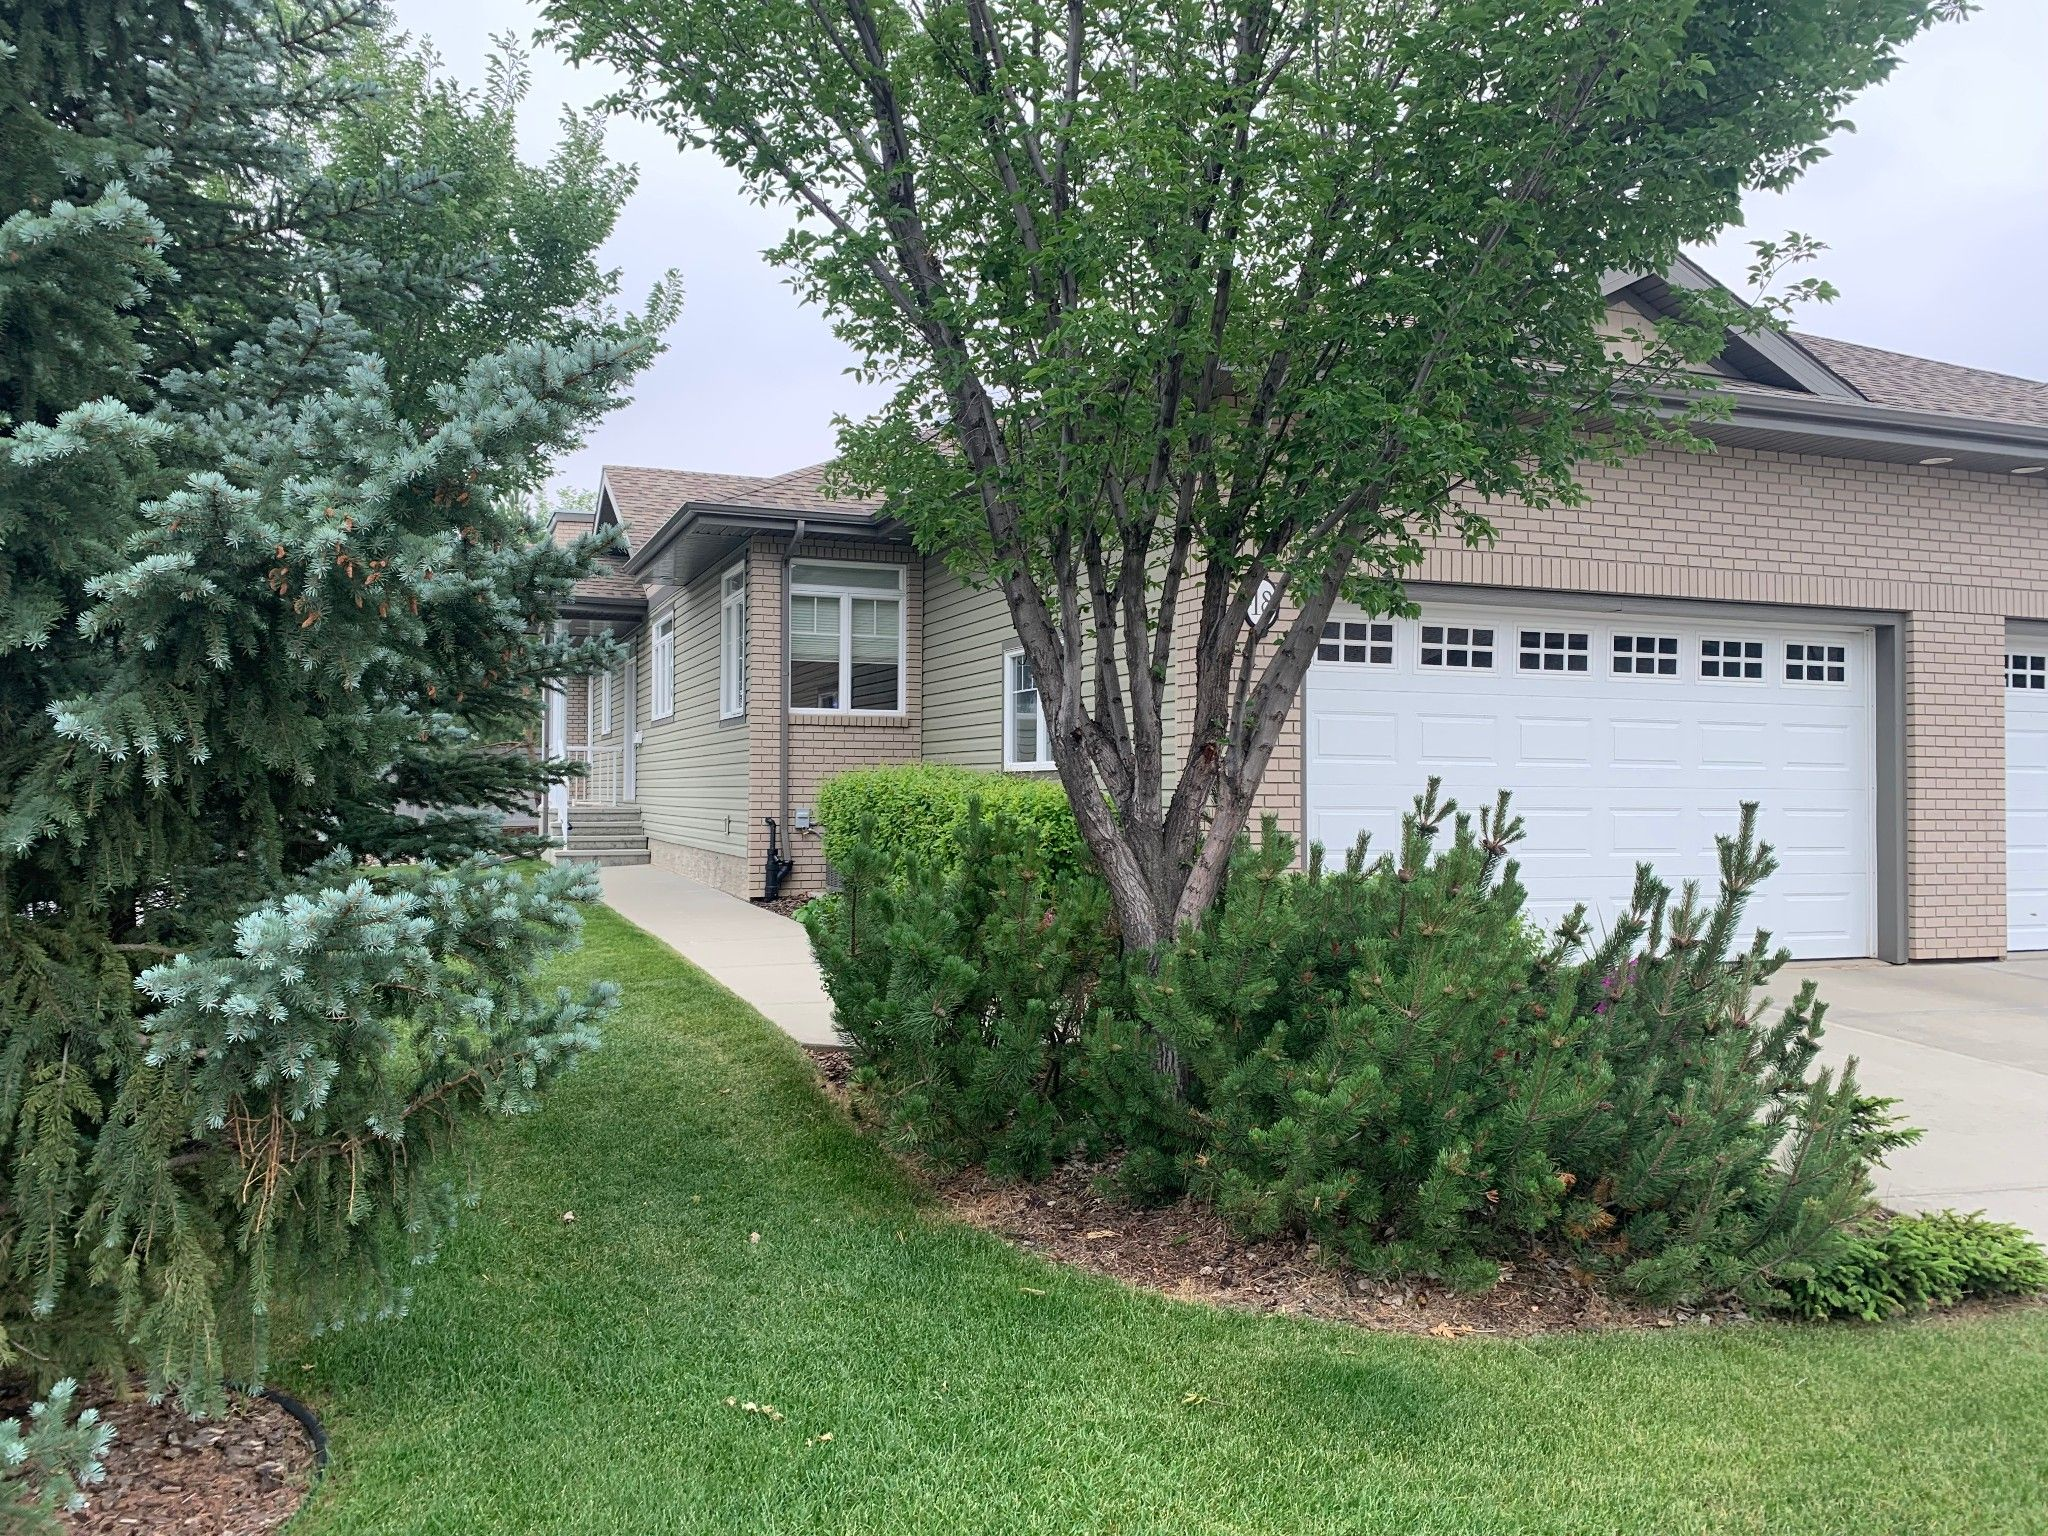 Adult 1/2 Duplex in Pristine Condition, Close to everything...